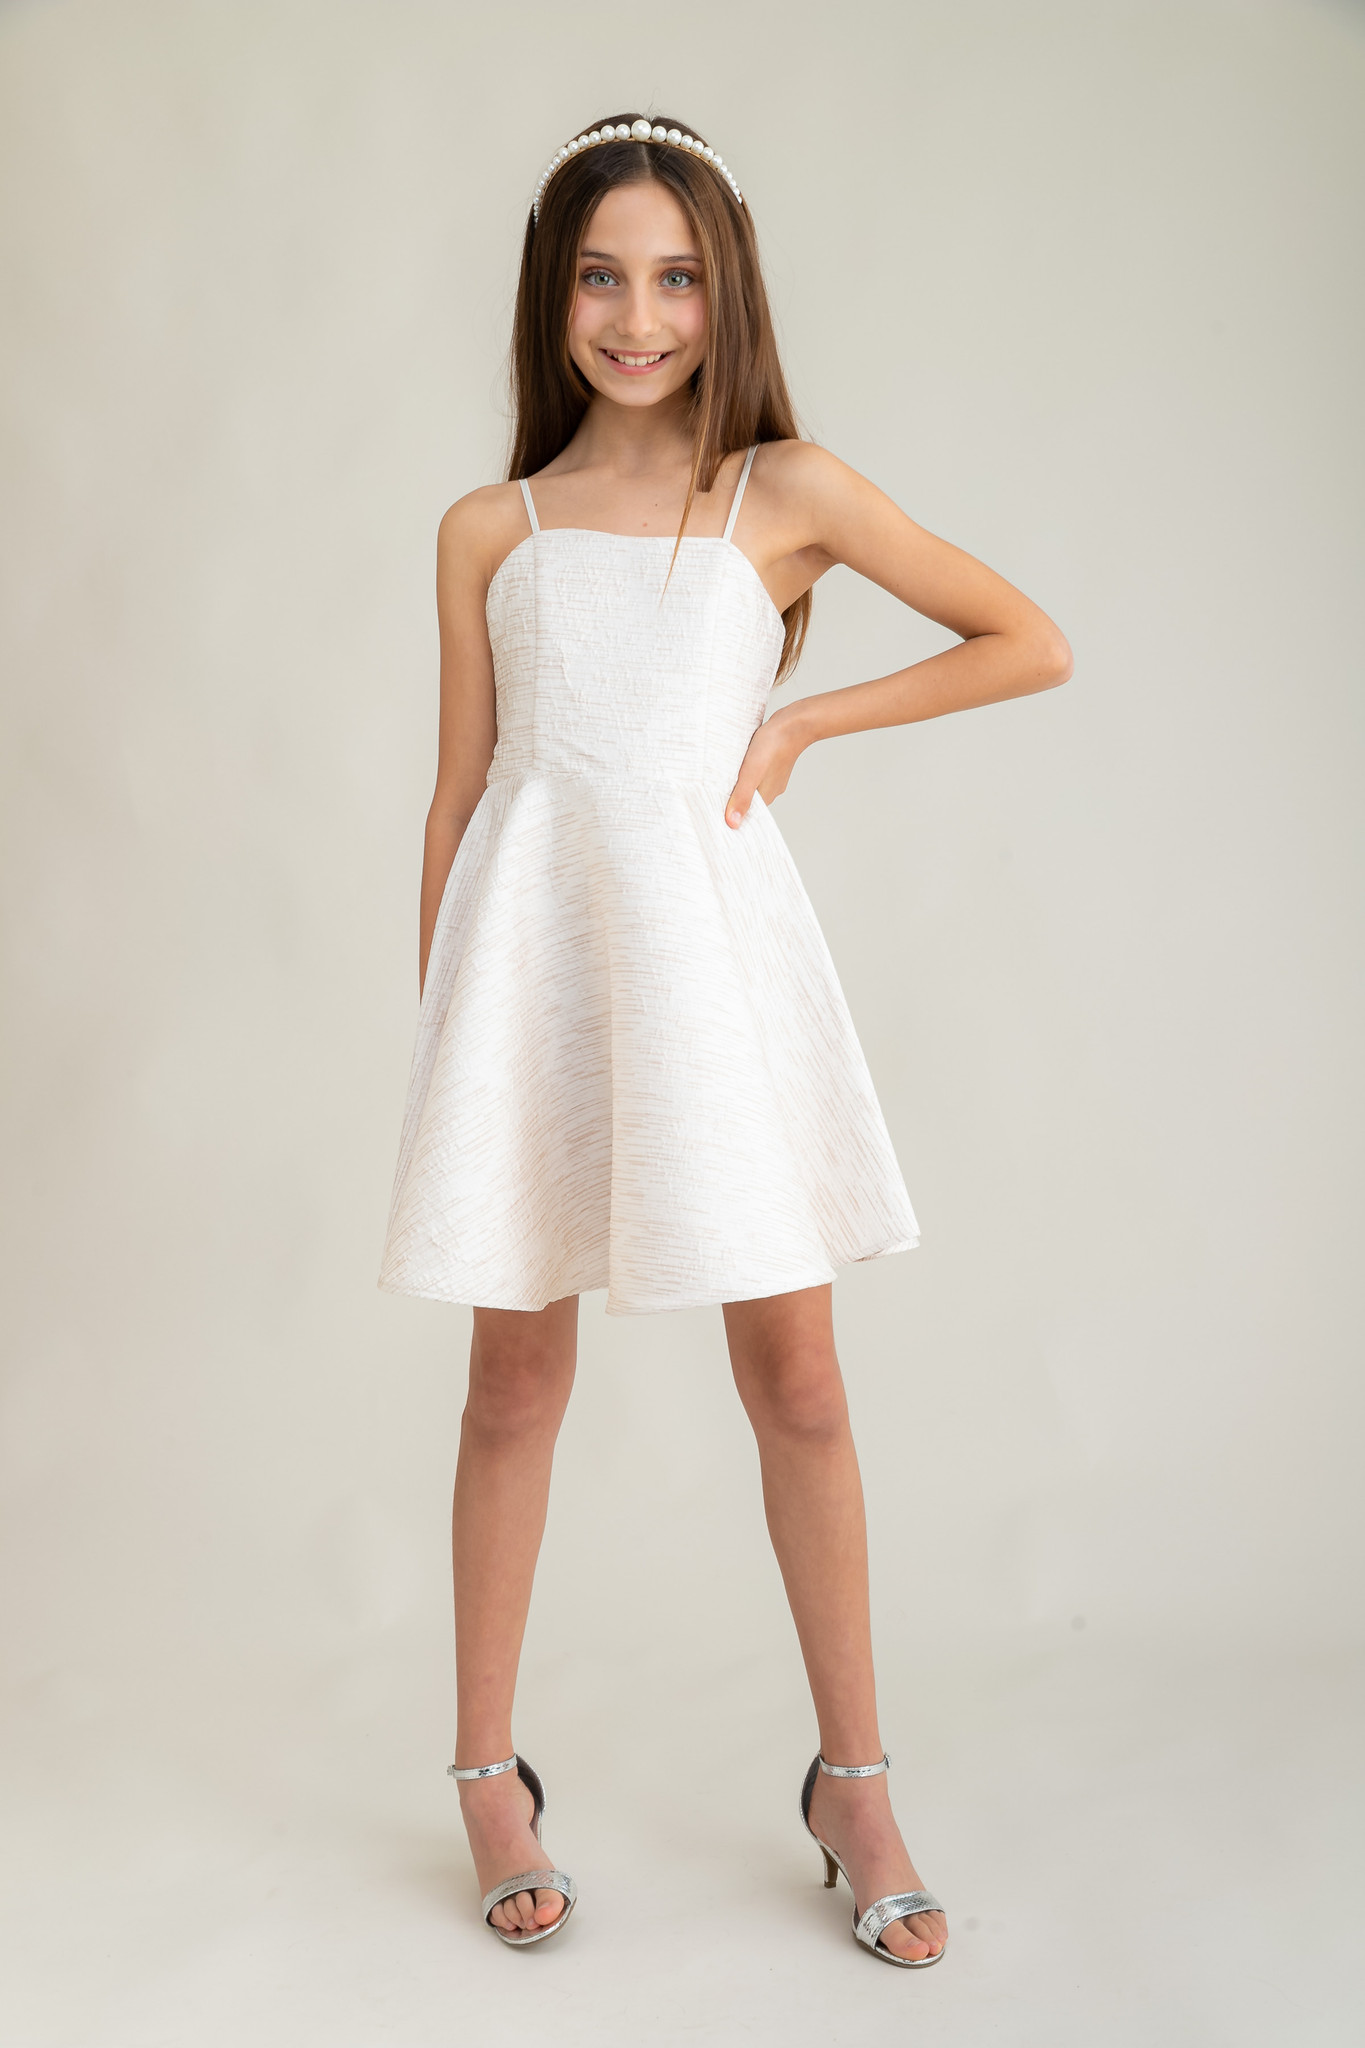 Tween Girls Ivory Jacquard Party Dress in Longer Length full image.